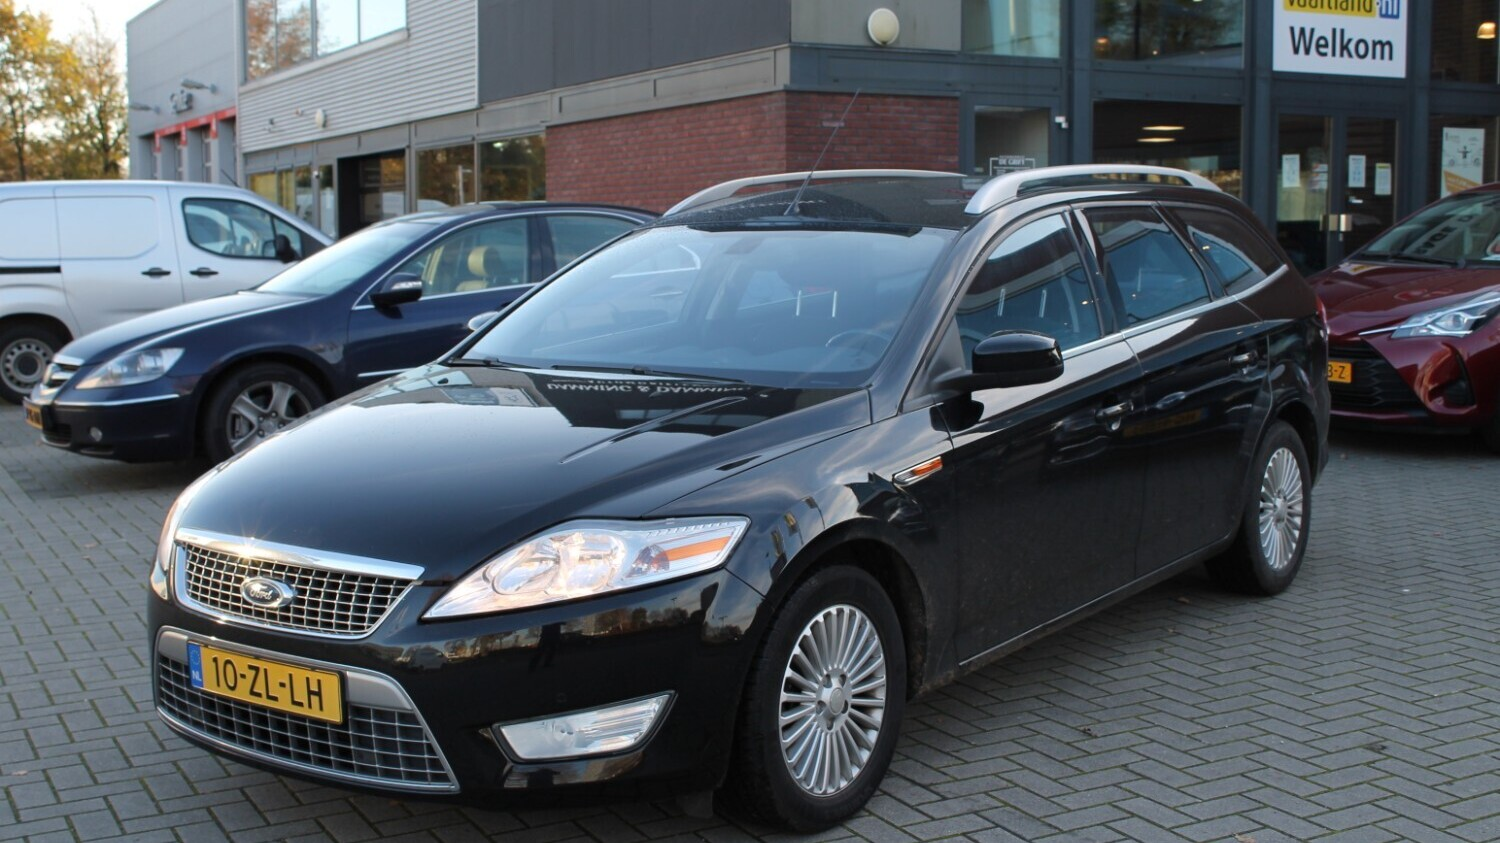 Ford Mondeo Station 2008 10-ZL-LH 1